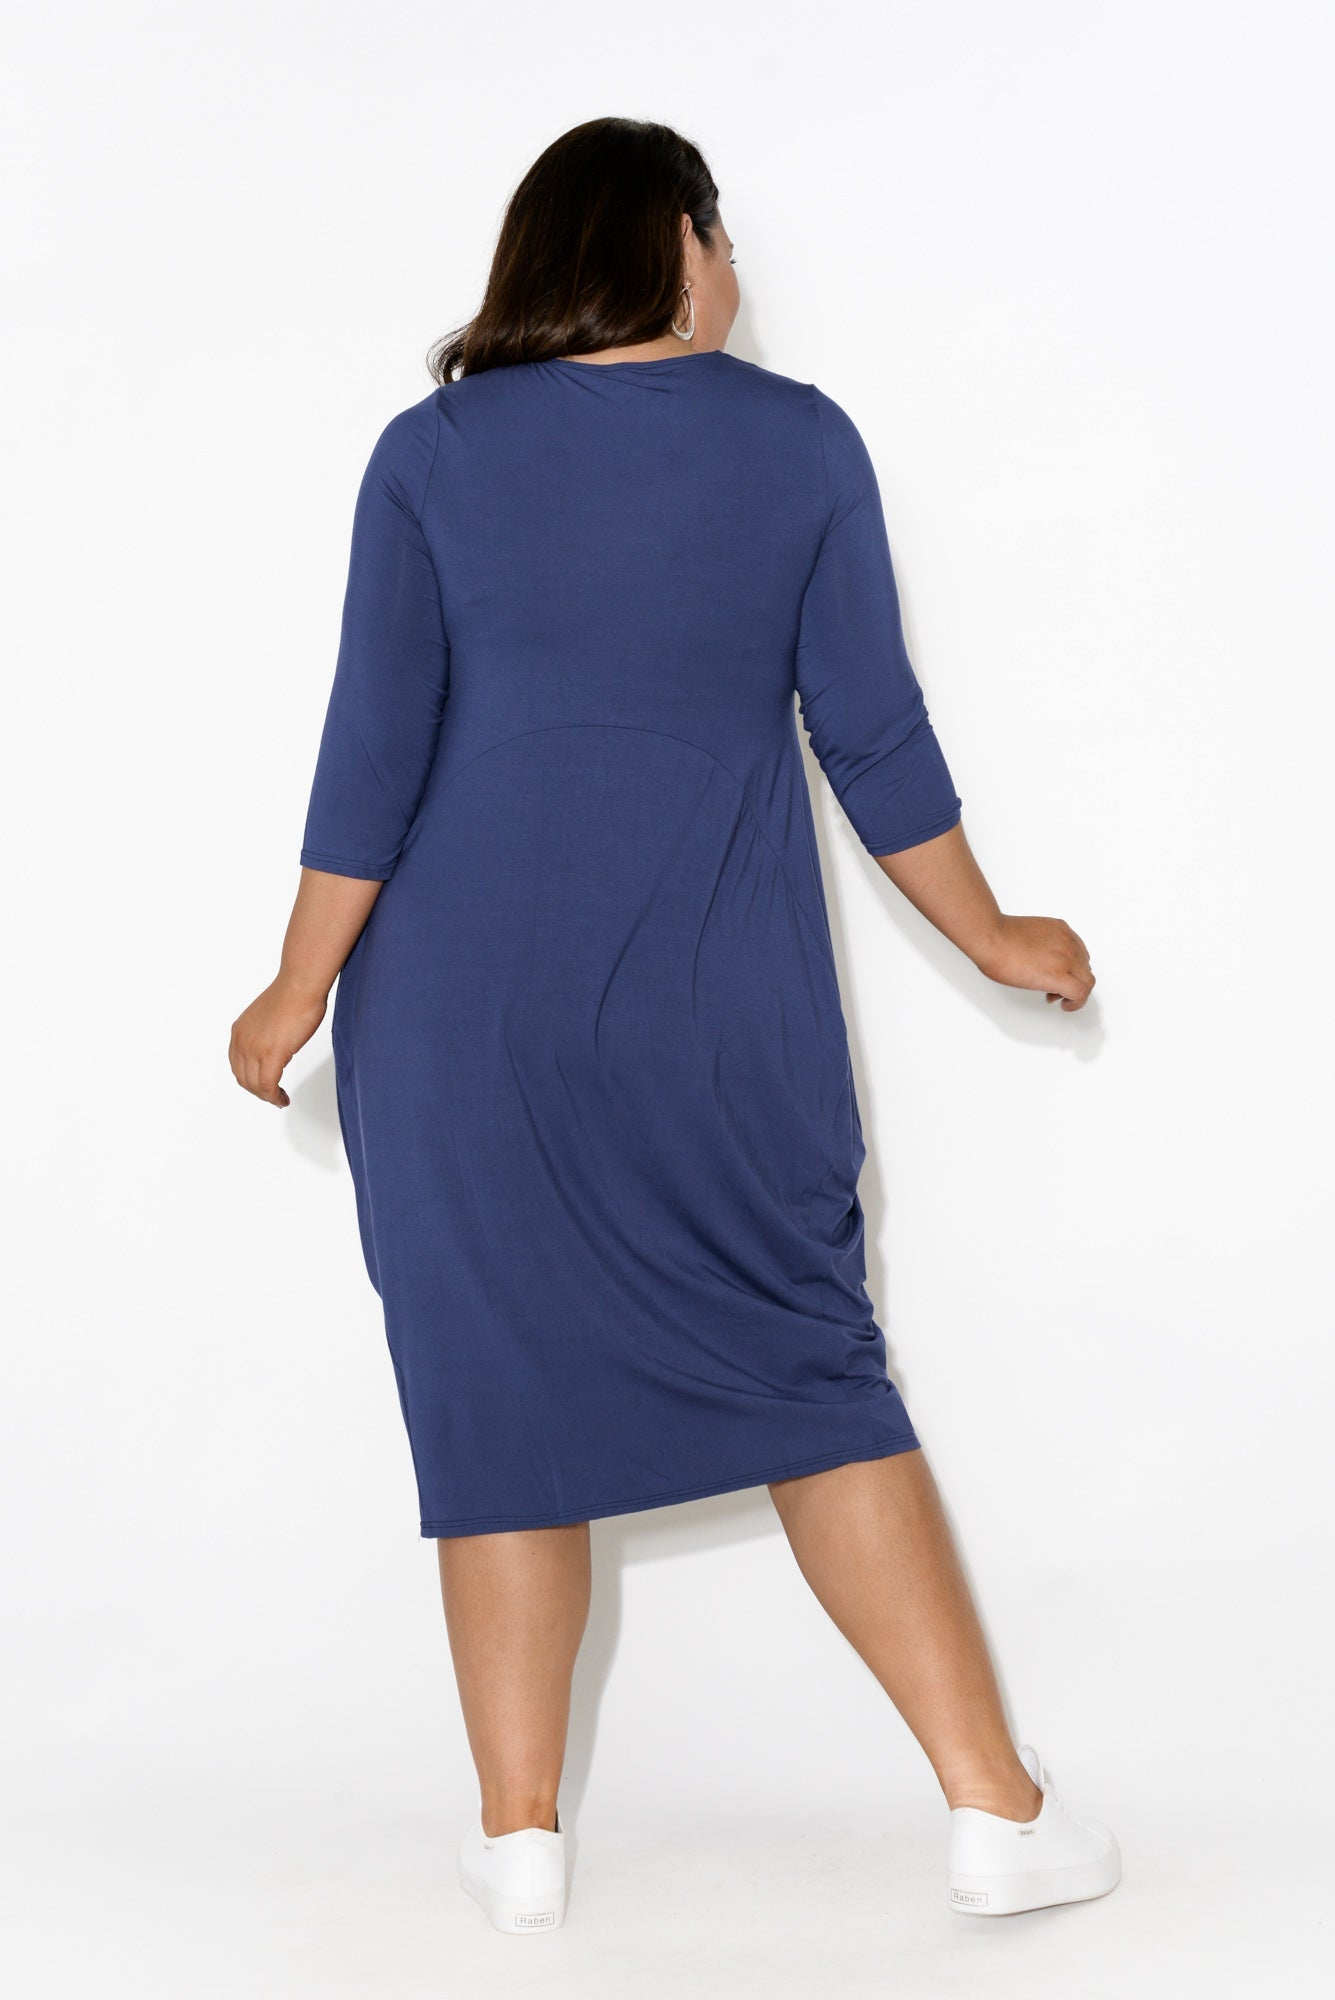 Juno Navy Bamboo Dress